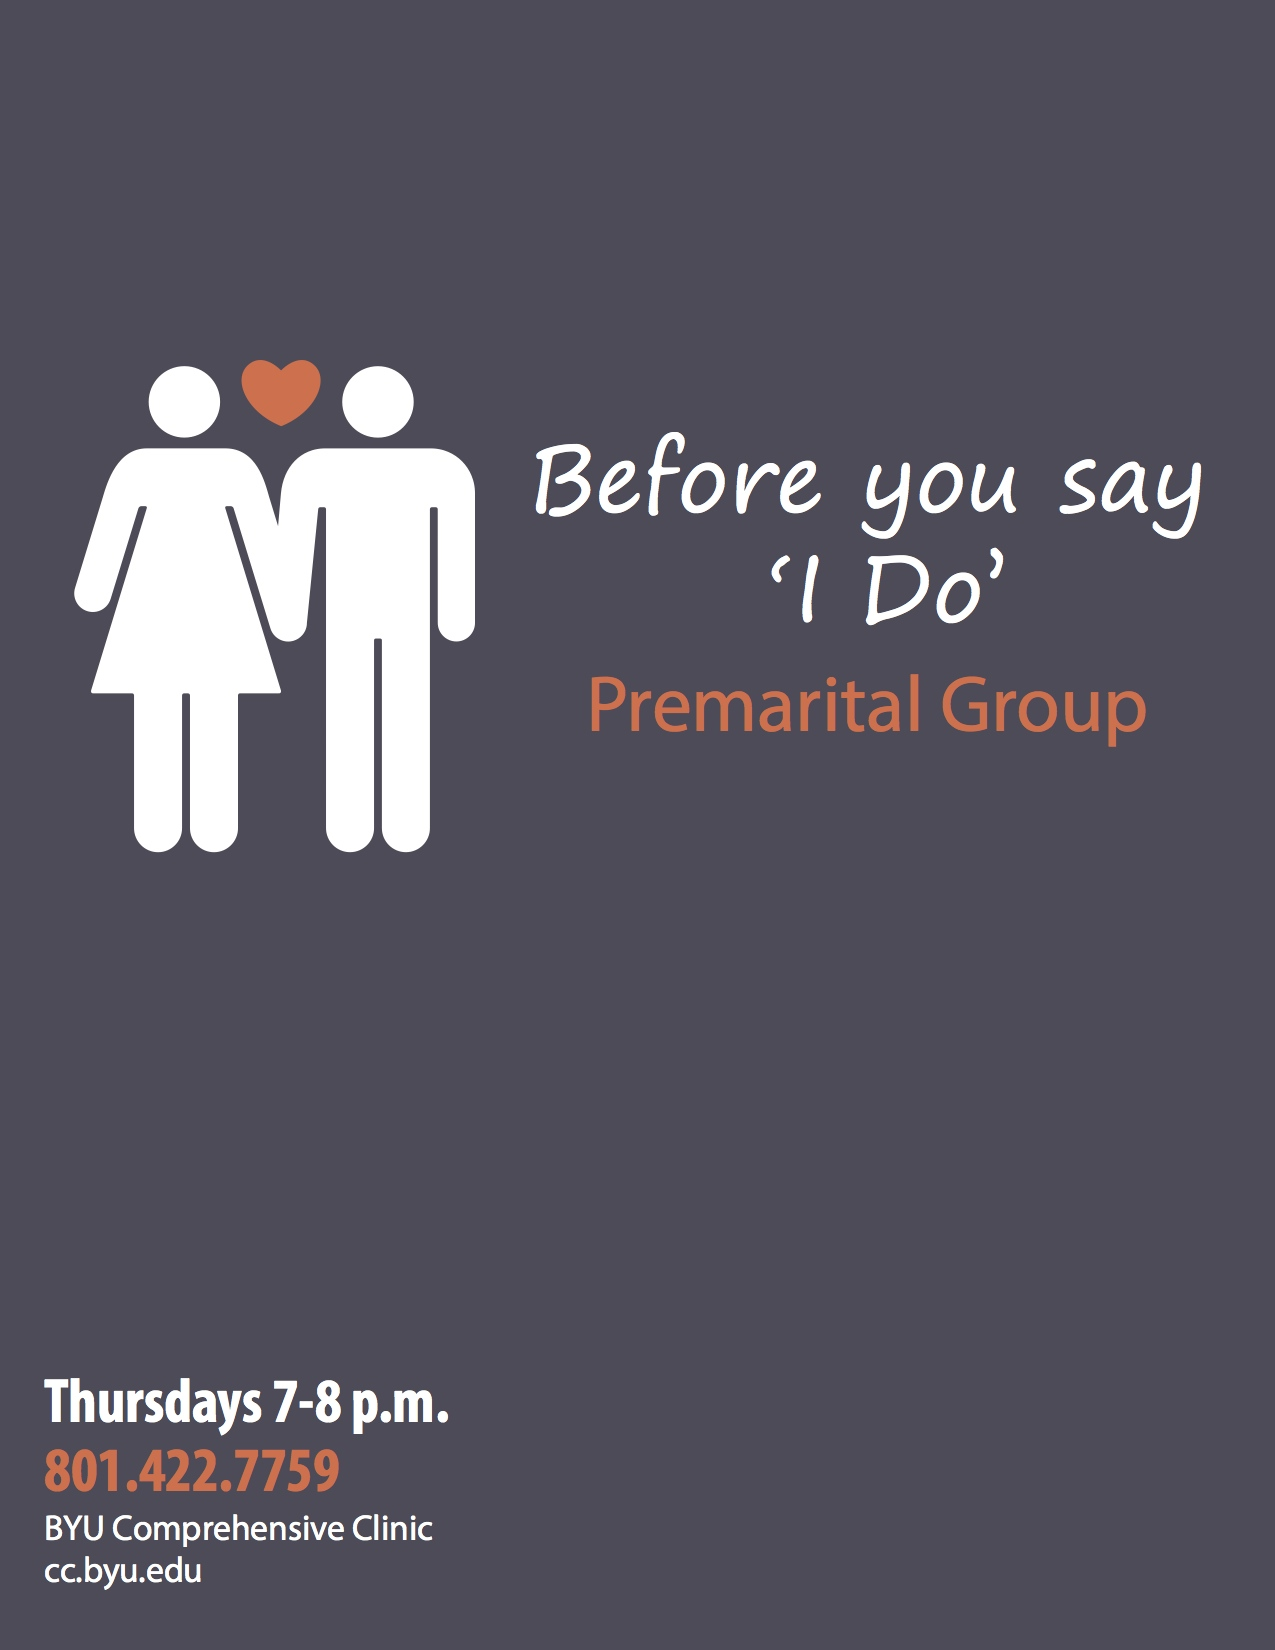 BYU's Comprehensive Clinic will offer a Premarital Group for couples preparing for marriage. (Brittany Condie)